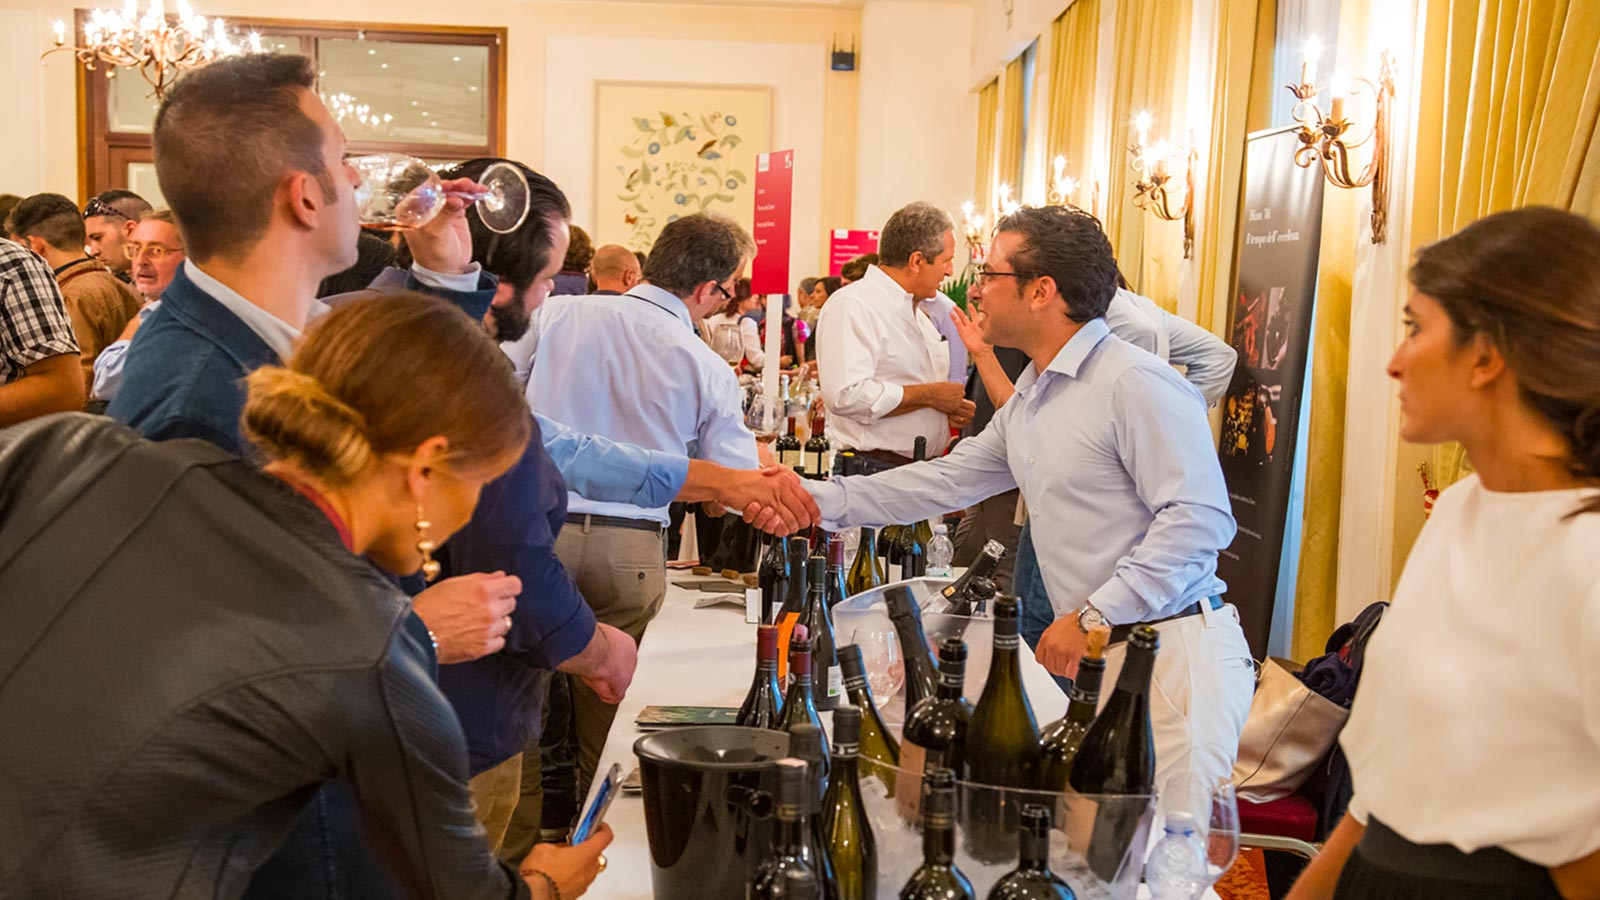 Banco DAssaggio, Wine Event, Hotel Villa Diodoro, Best Events, Prestigious Star Awards 2019